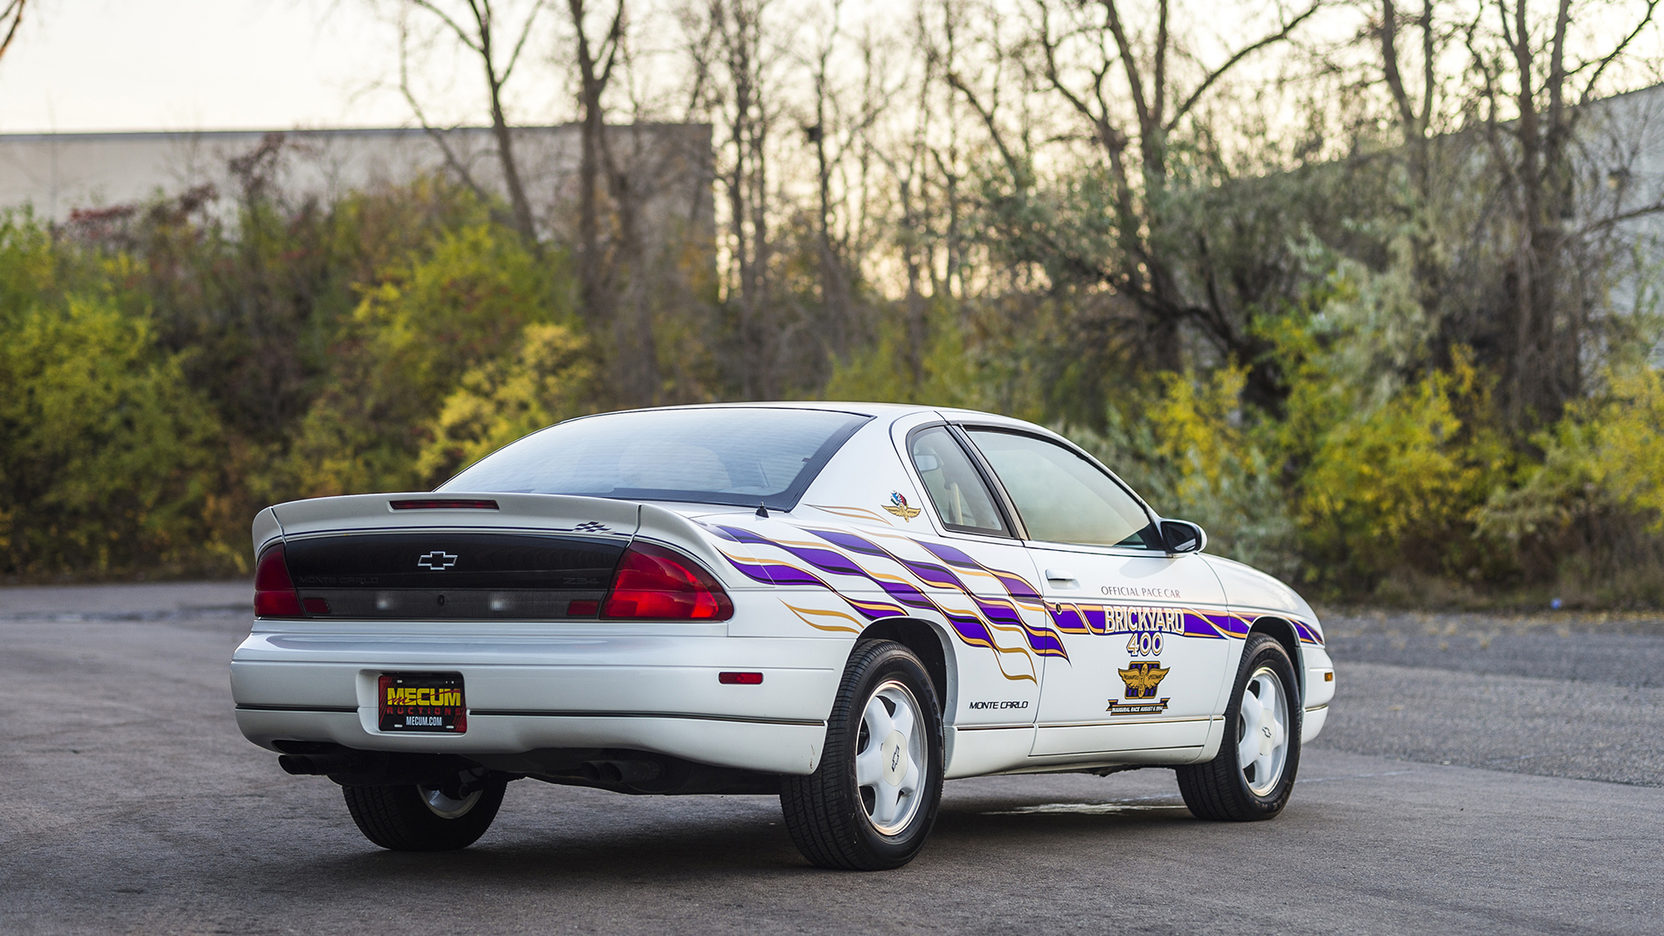 1995 chevrolet monte carlo z34 pace car edition 3 full screen [ 1664 x 936 Pixel ]